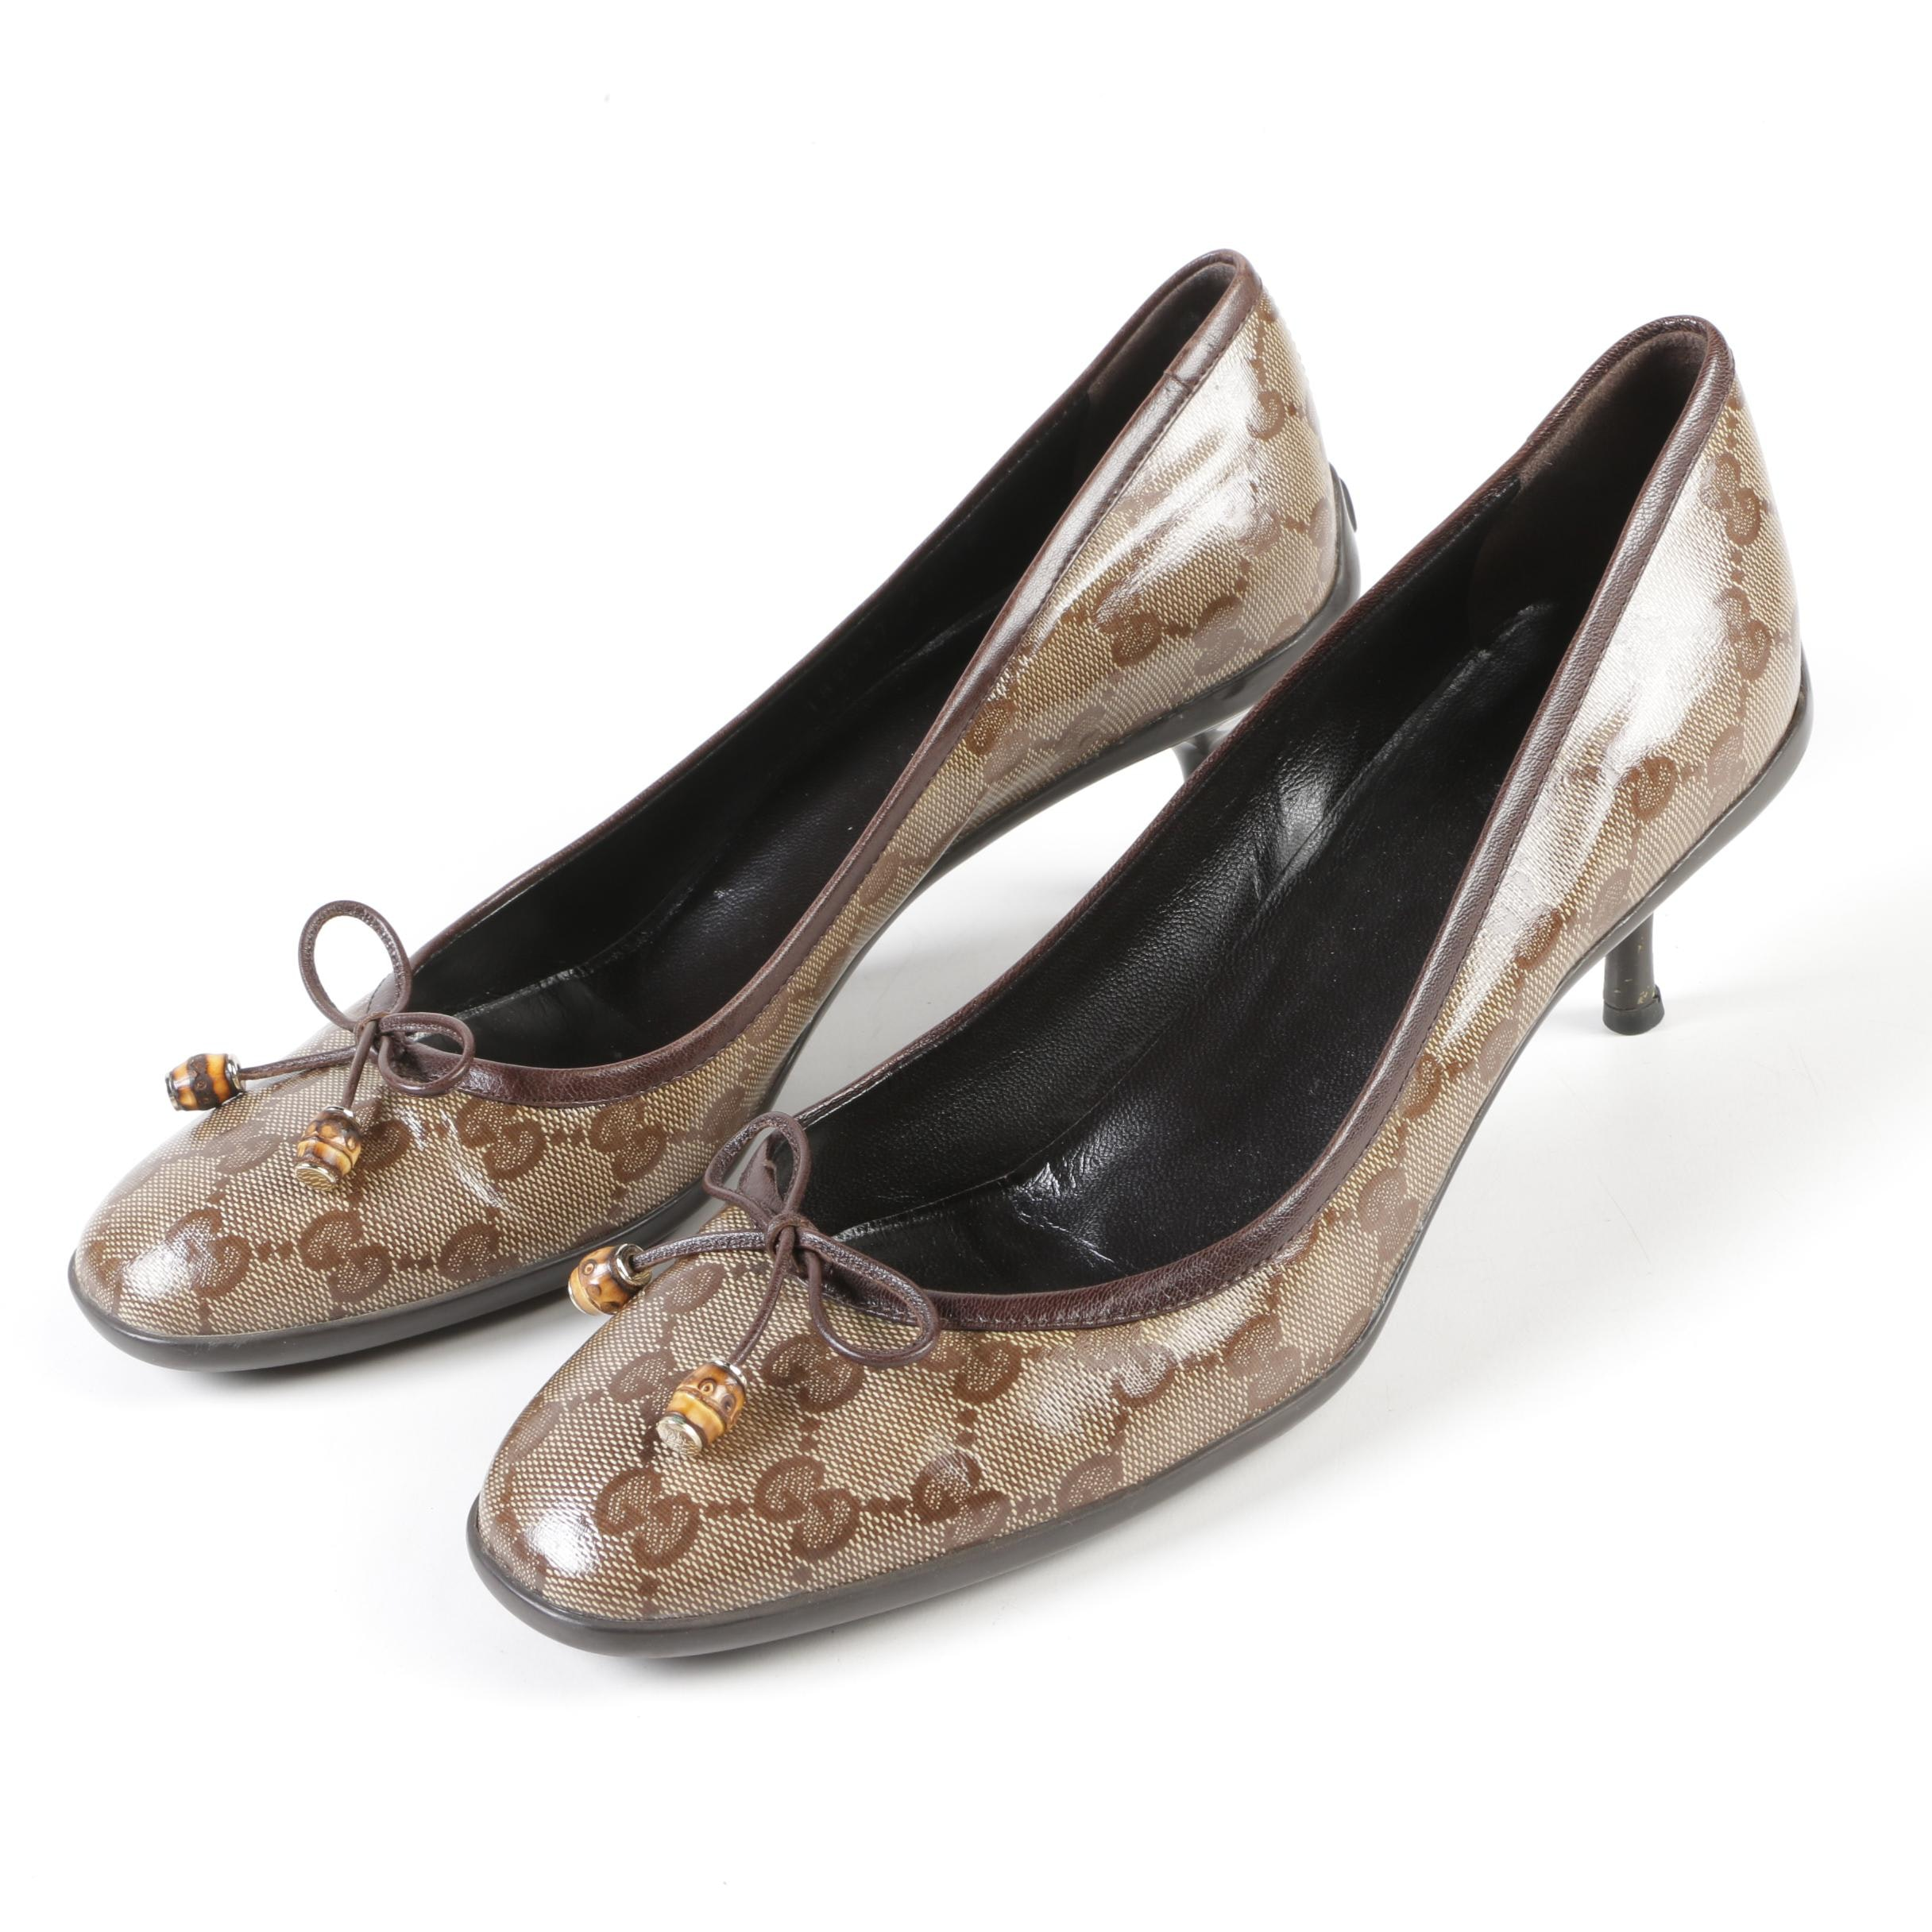 Gucci Brown Monogram Coated Canvas and Leather Pumps